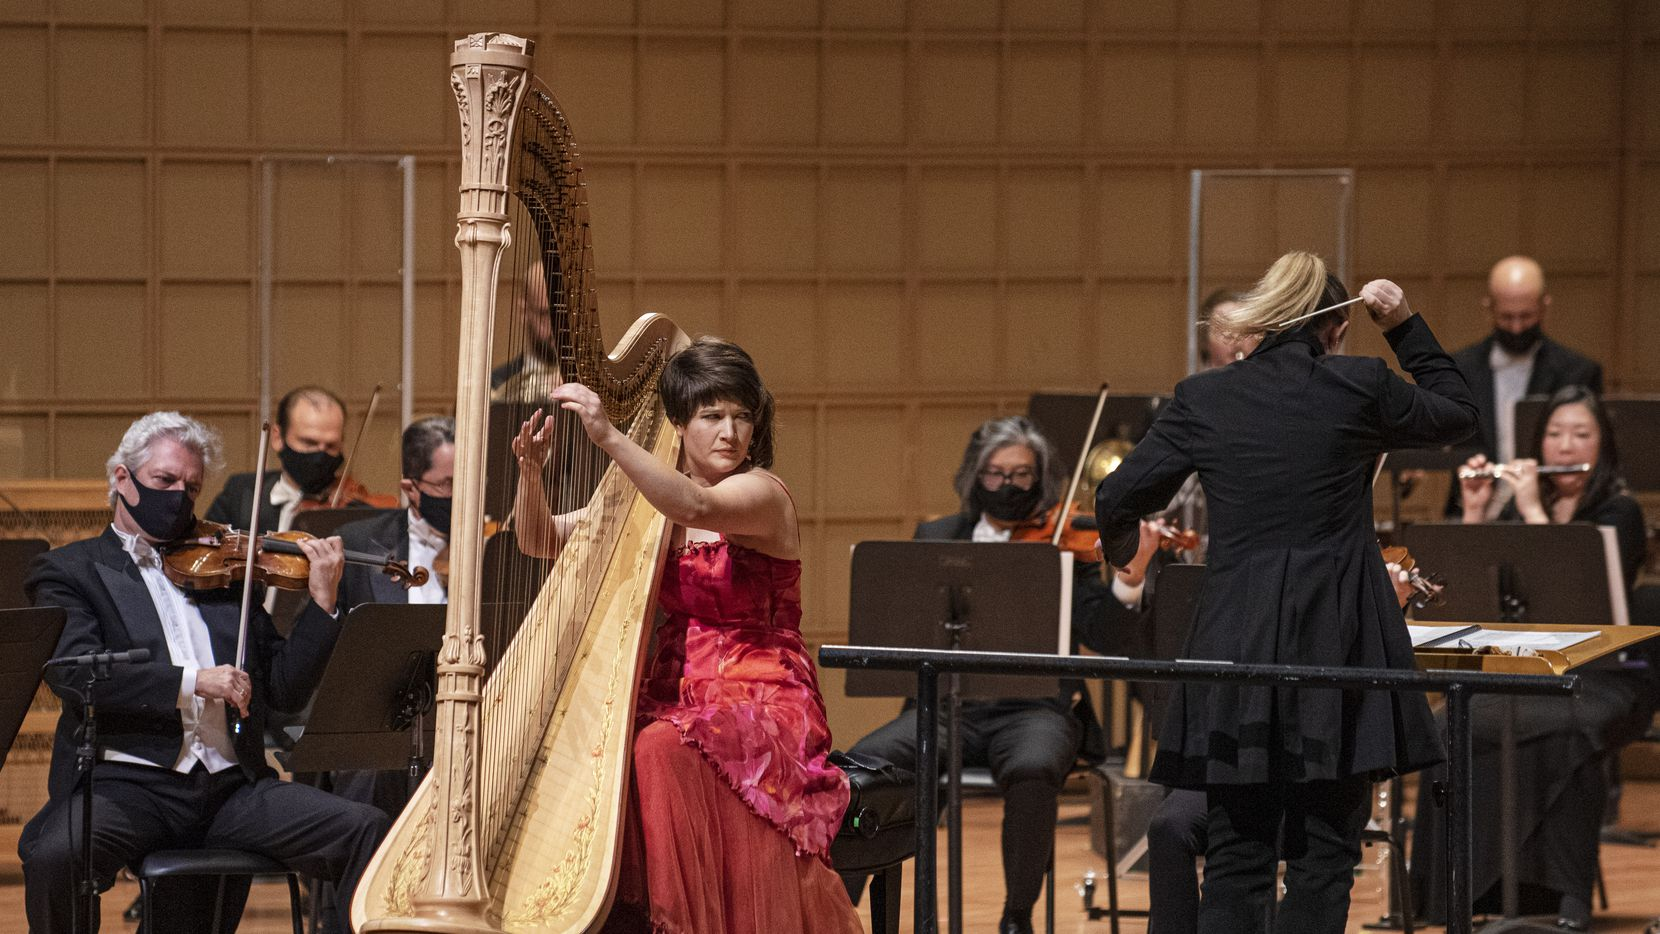 Harpist Emily Levin (left) performs the Harp Concerto by Alberto Ginastera with principal guest conductor Gemma New and the Dallas Symphony Orchestra at the Morton H. Meyerson Symphony Center in downtown Dallas on Sept. 24, 2020.